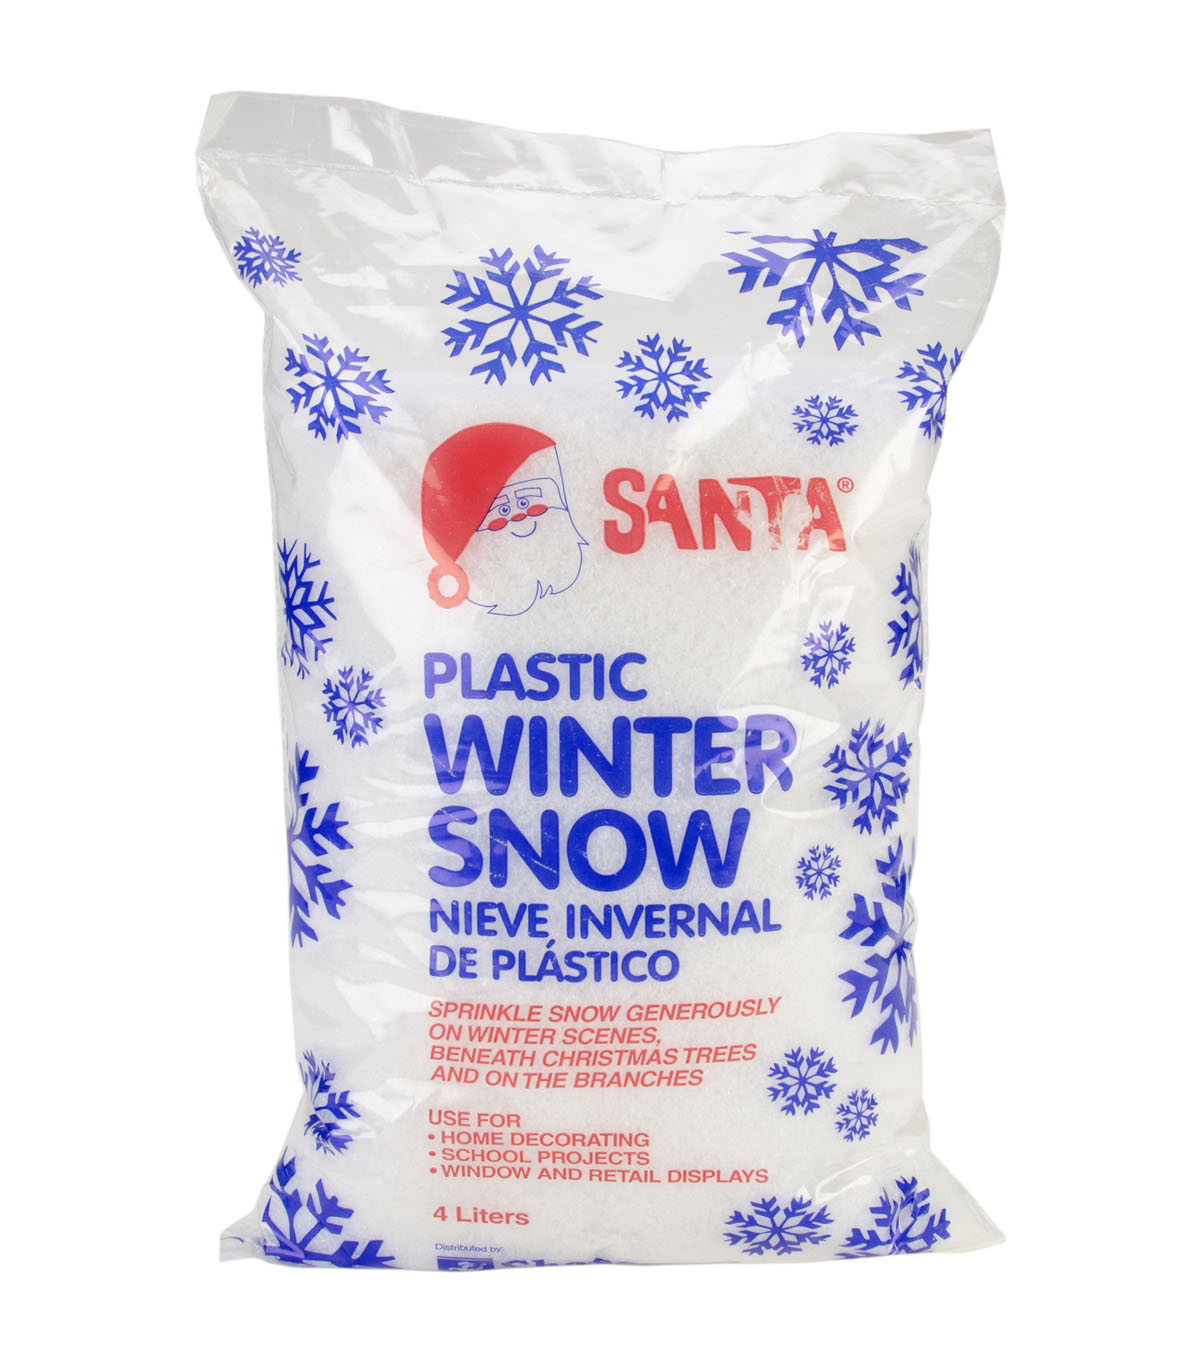 Chase Products Co. Christmas Santa 6 oz. Plastic Winter Snow